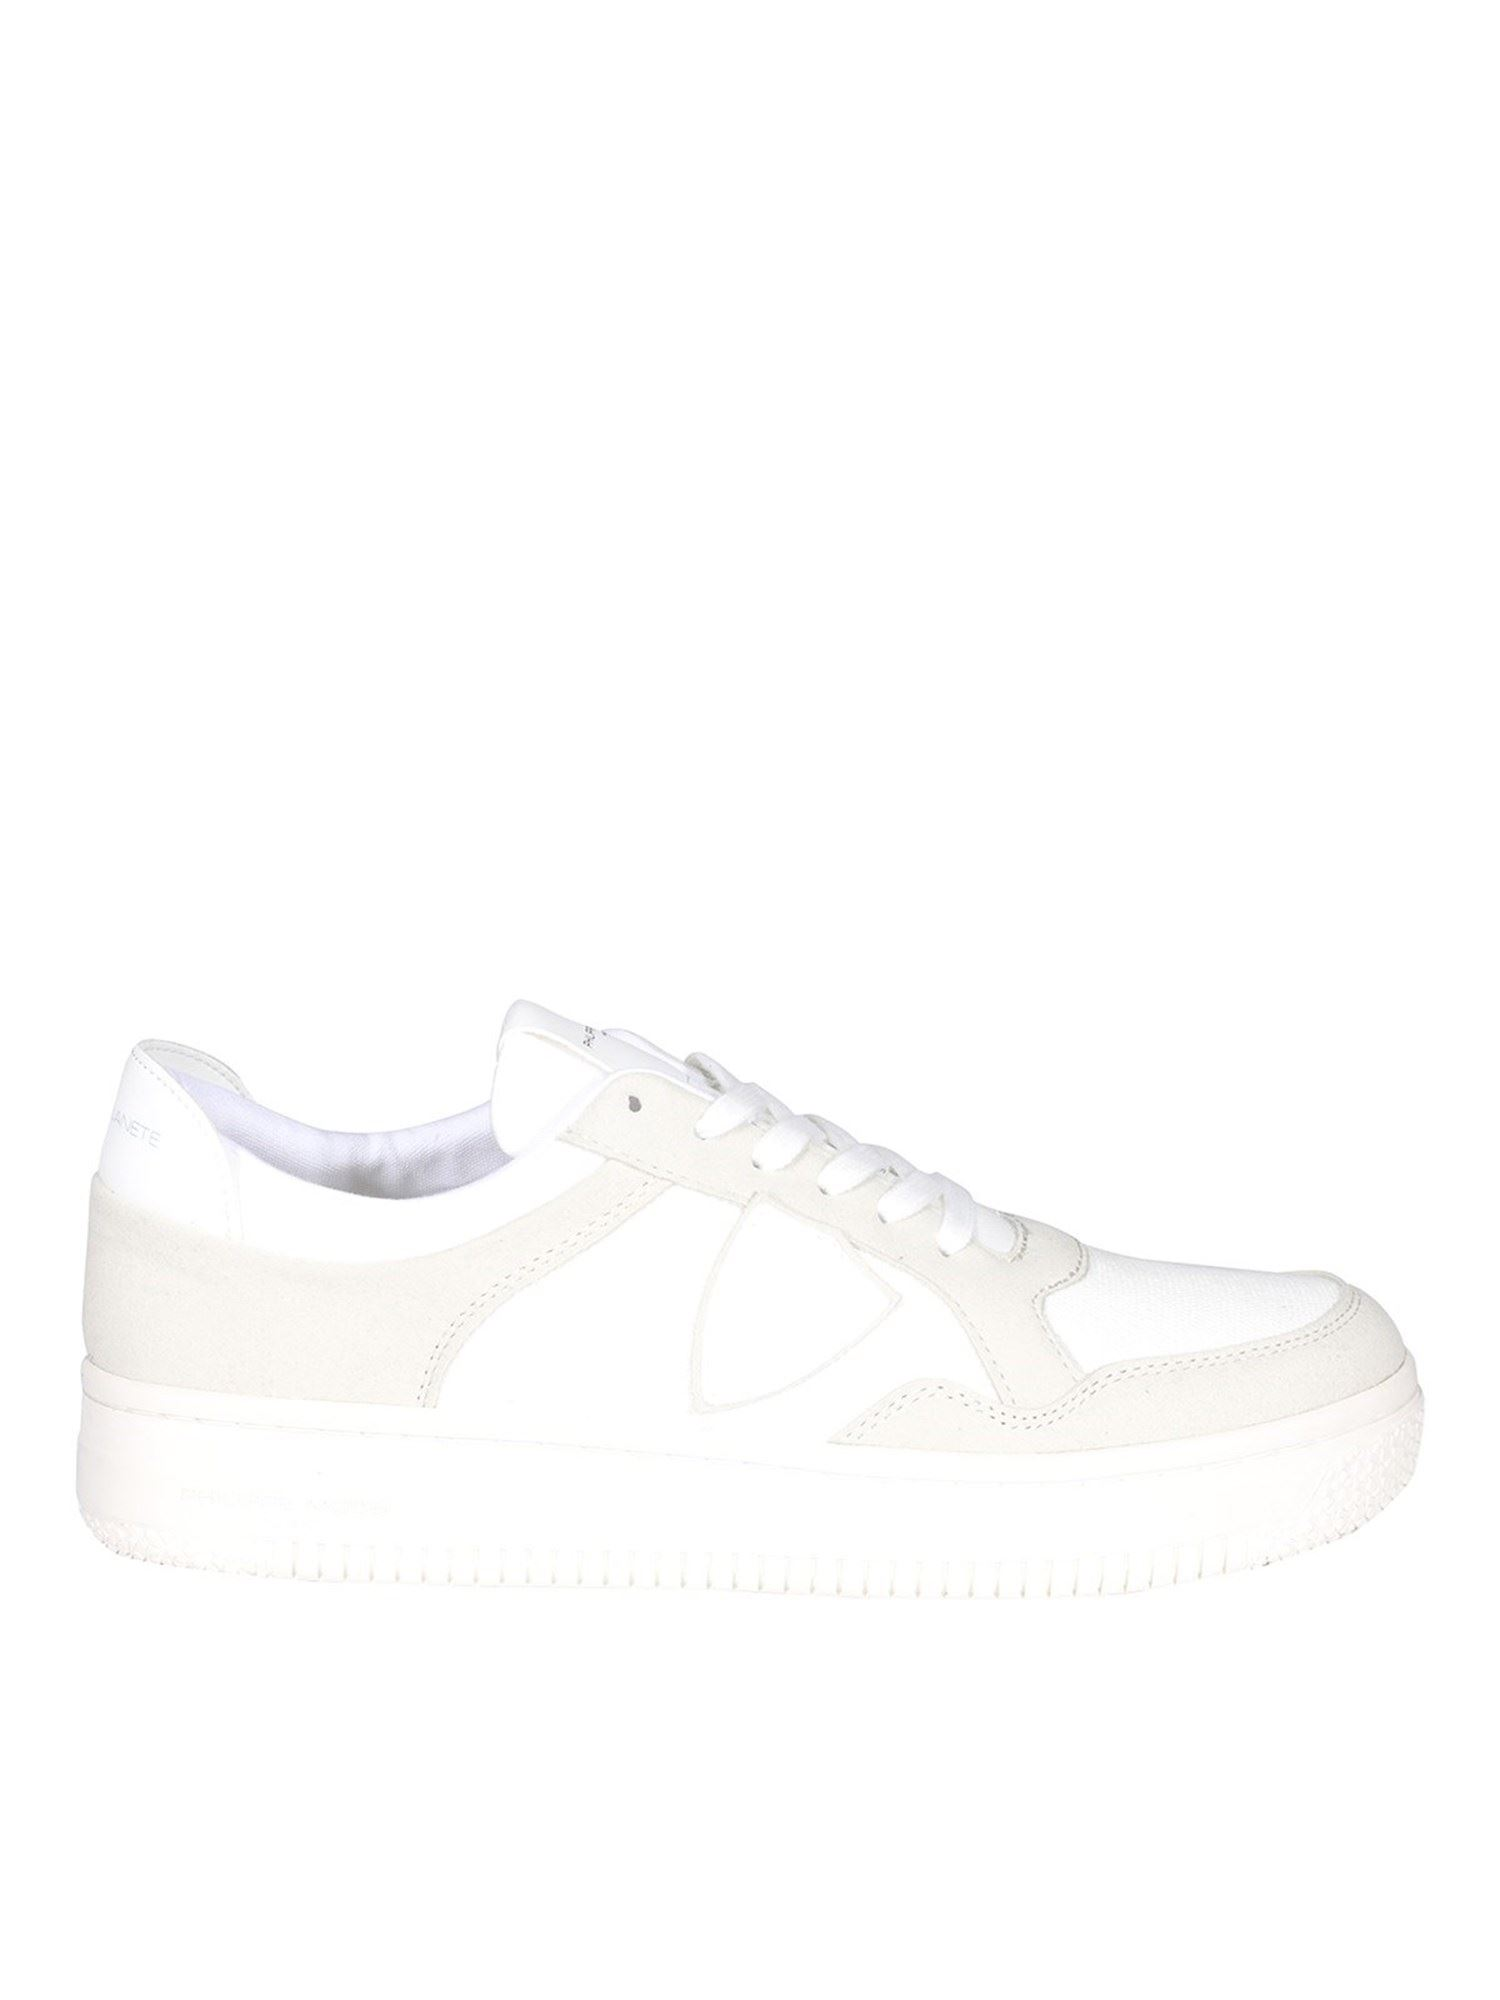 Philippe Model Low tops LYON COTON ECO-FRIENDLY SNEAKERS IN WHITE